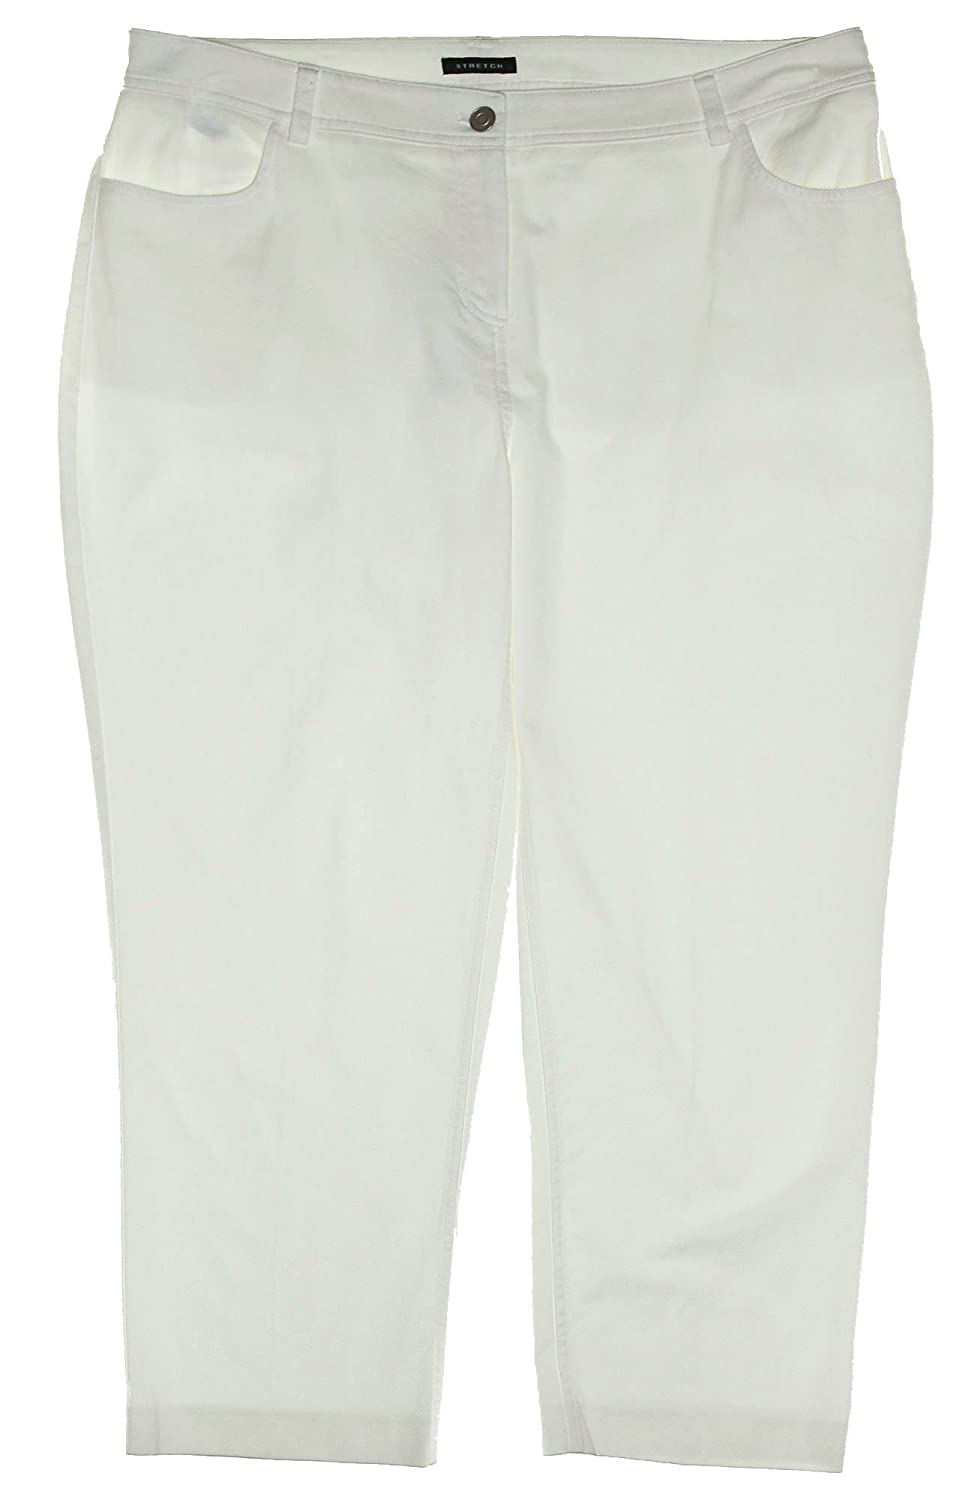 Jones New York Women's Plus Size Ankle Length Casual Pants 14w Oyster